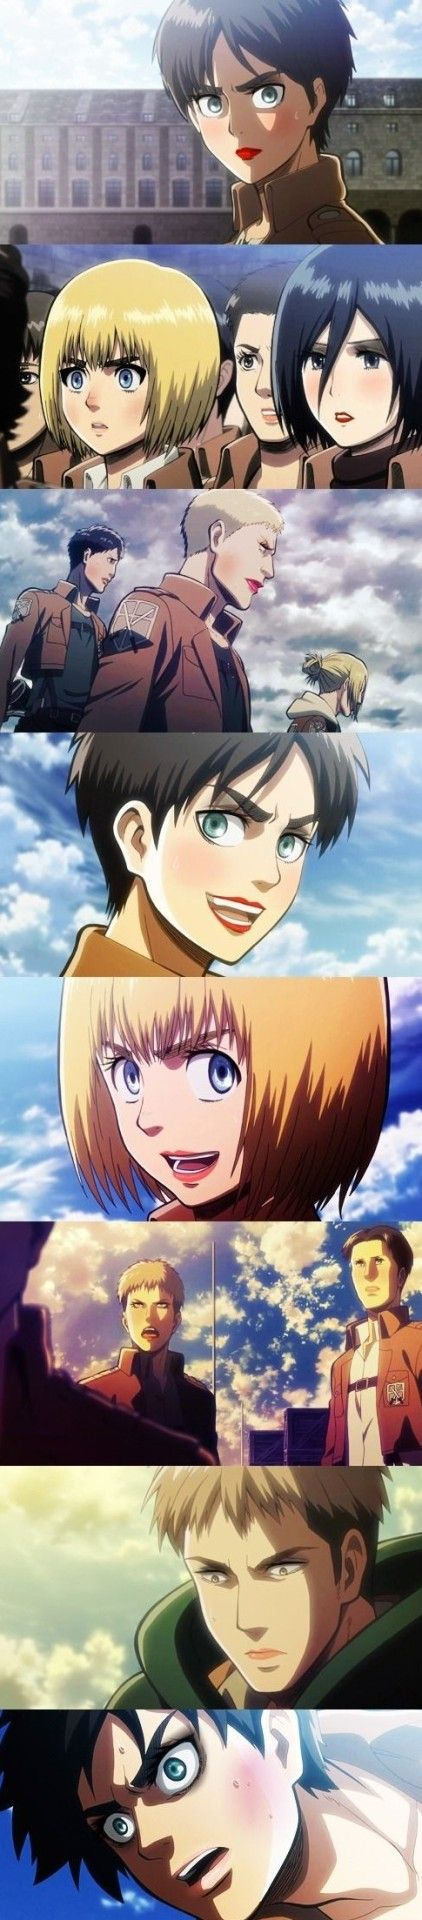 Armin looks like a girl even more now... lol you can still